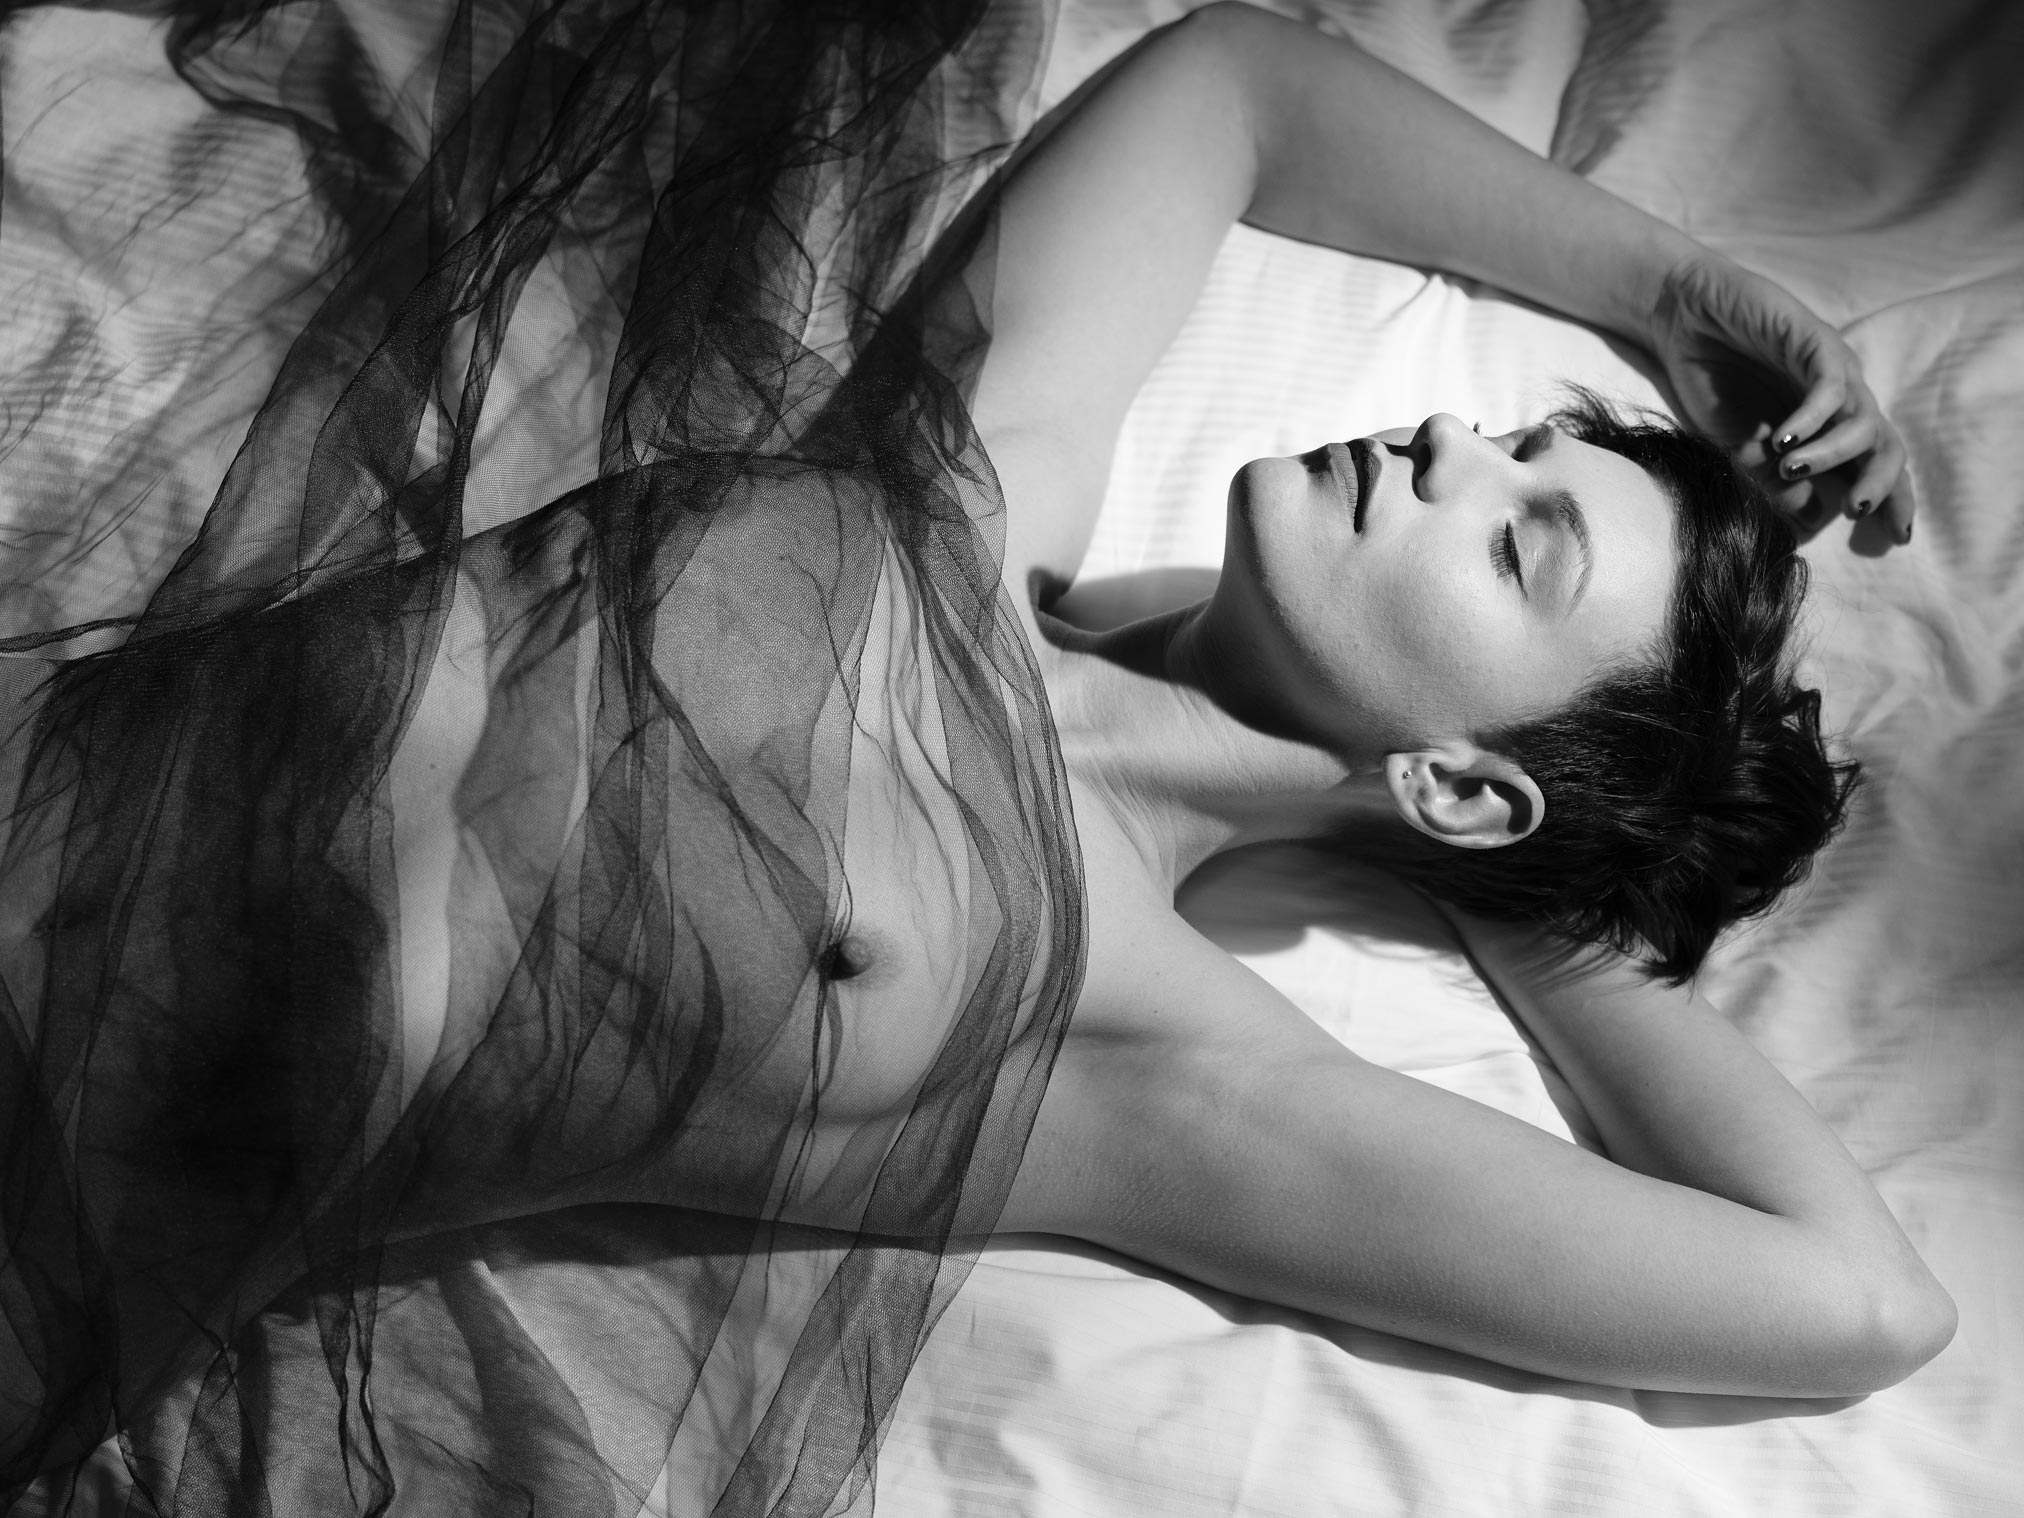 This picture of a Misha lying on a bed with a sheer cloth covering her like a veil.